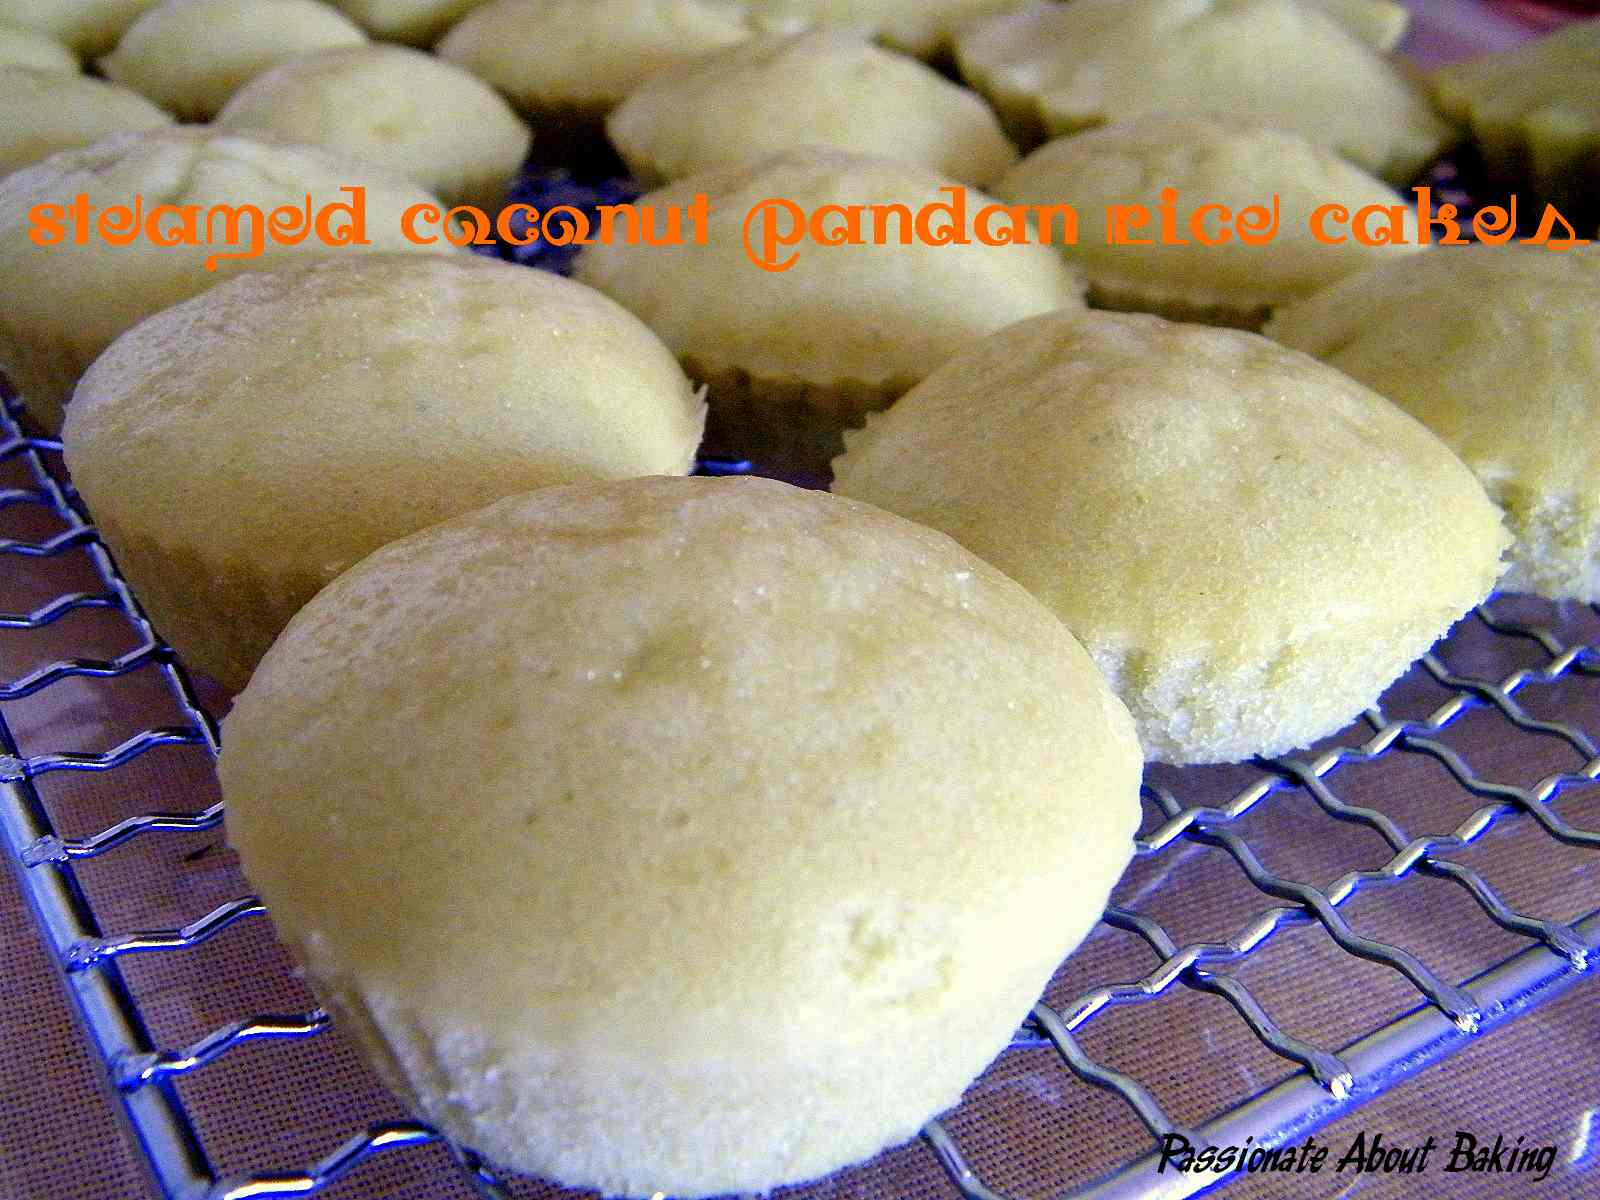 Steam Cake Recipes Pictures : Steam Pandan Coconut Rice Cakes Passionate About Baking